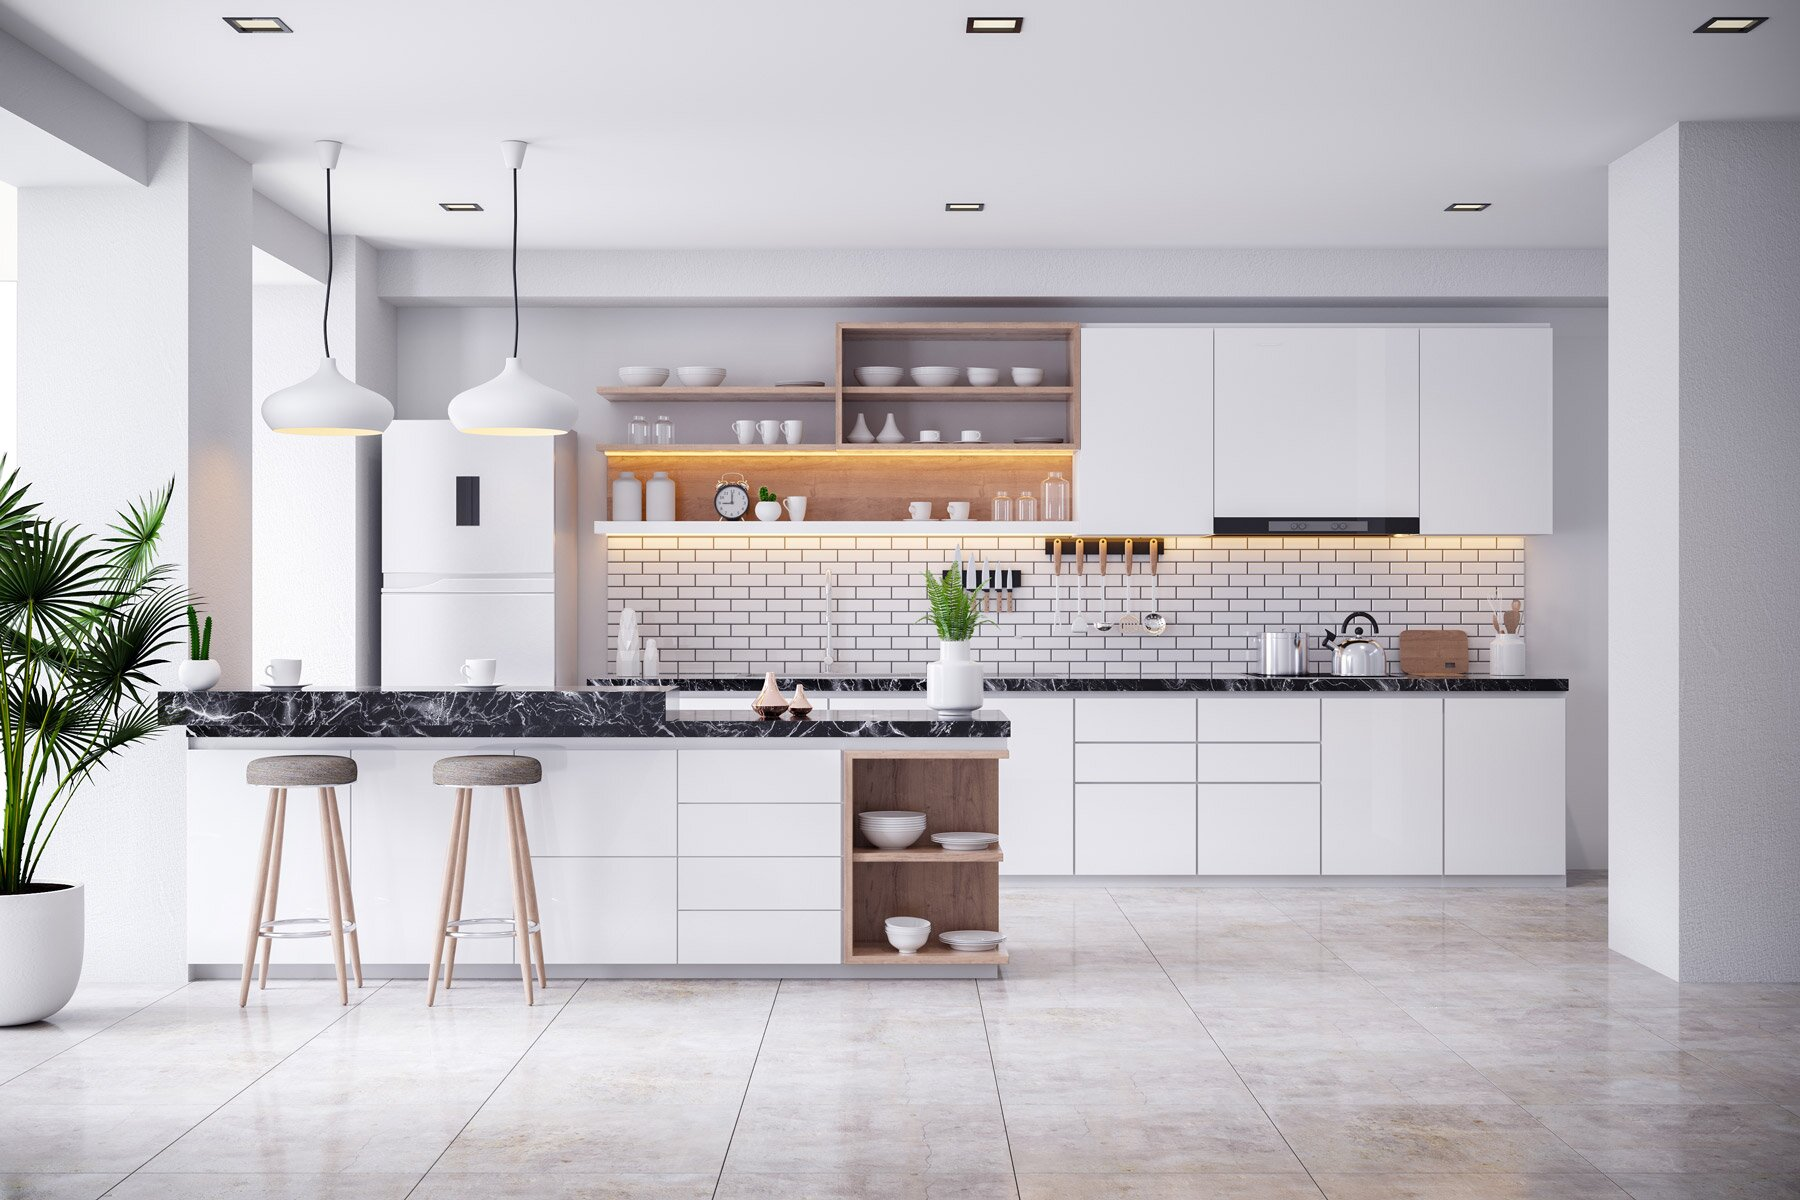 Kitchen Remodel Costs: How Much to Spend on Your Renovation | Real Simple